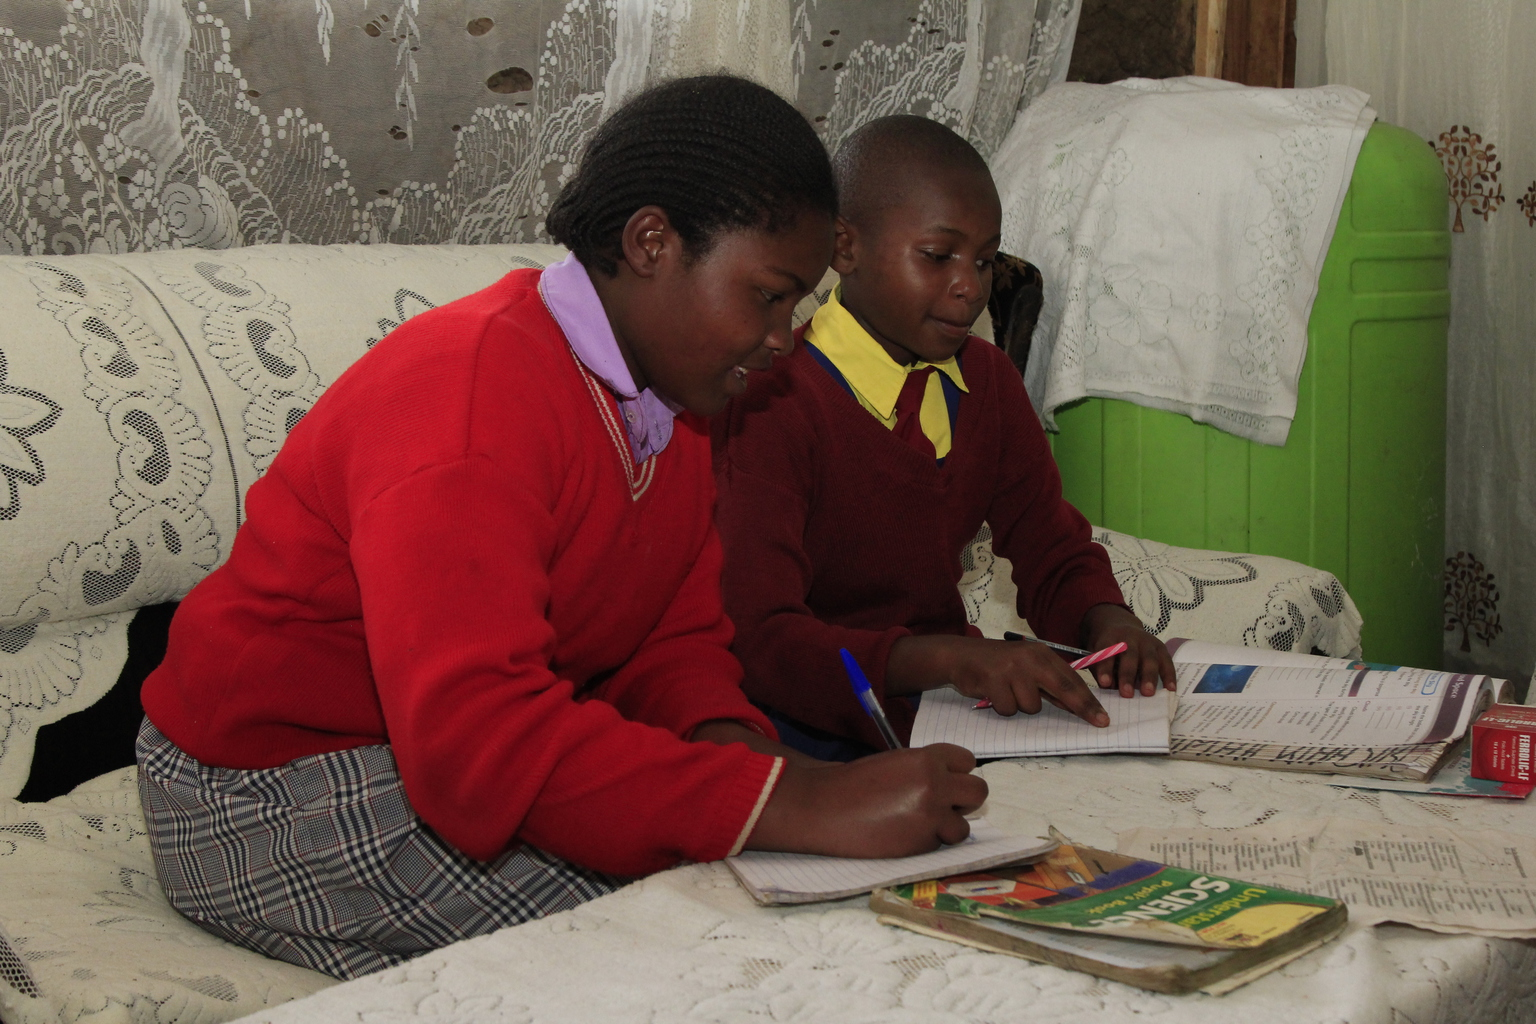 Two girls in school uniforms do their homework in their living room